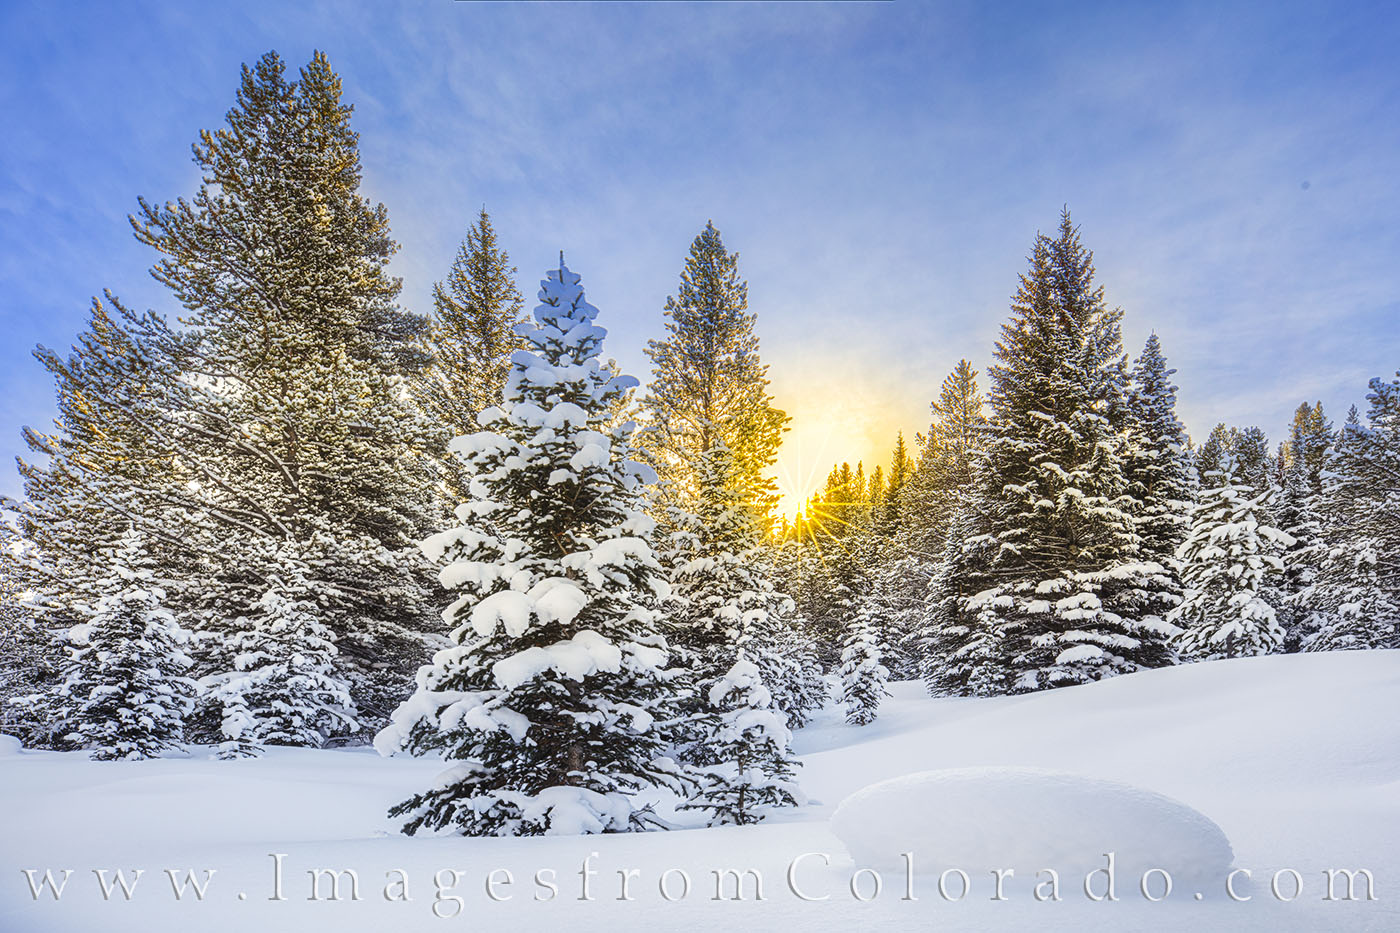 snow, winter, december, winter park, sunrise, sunburst, winter hiking, winter park, grand county, fraser, fraser valley, rocky mountains, photo